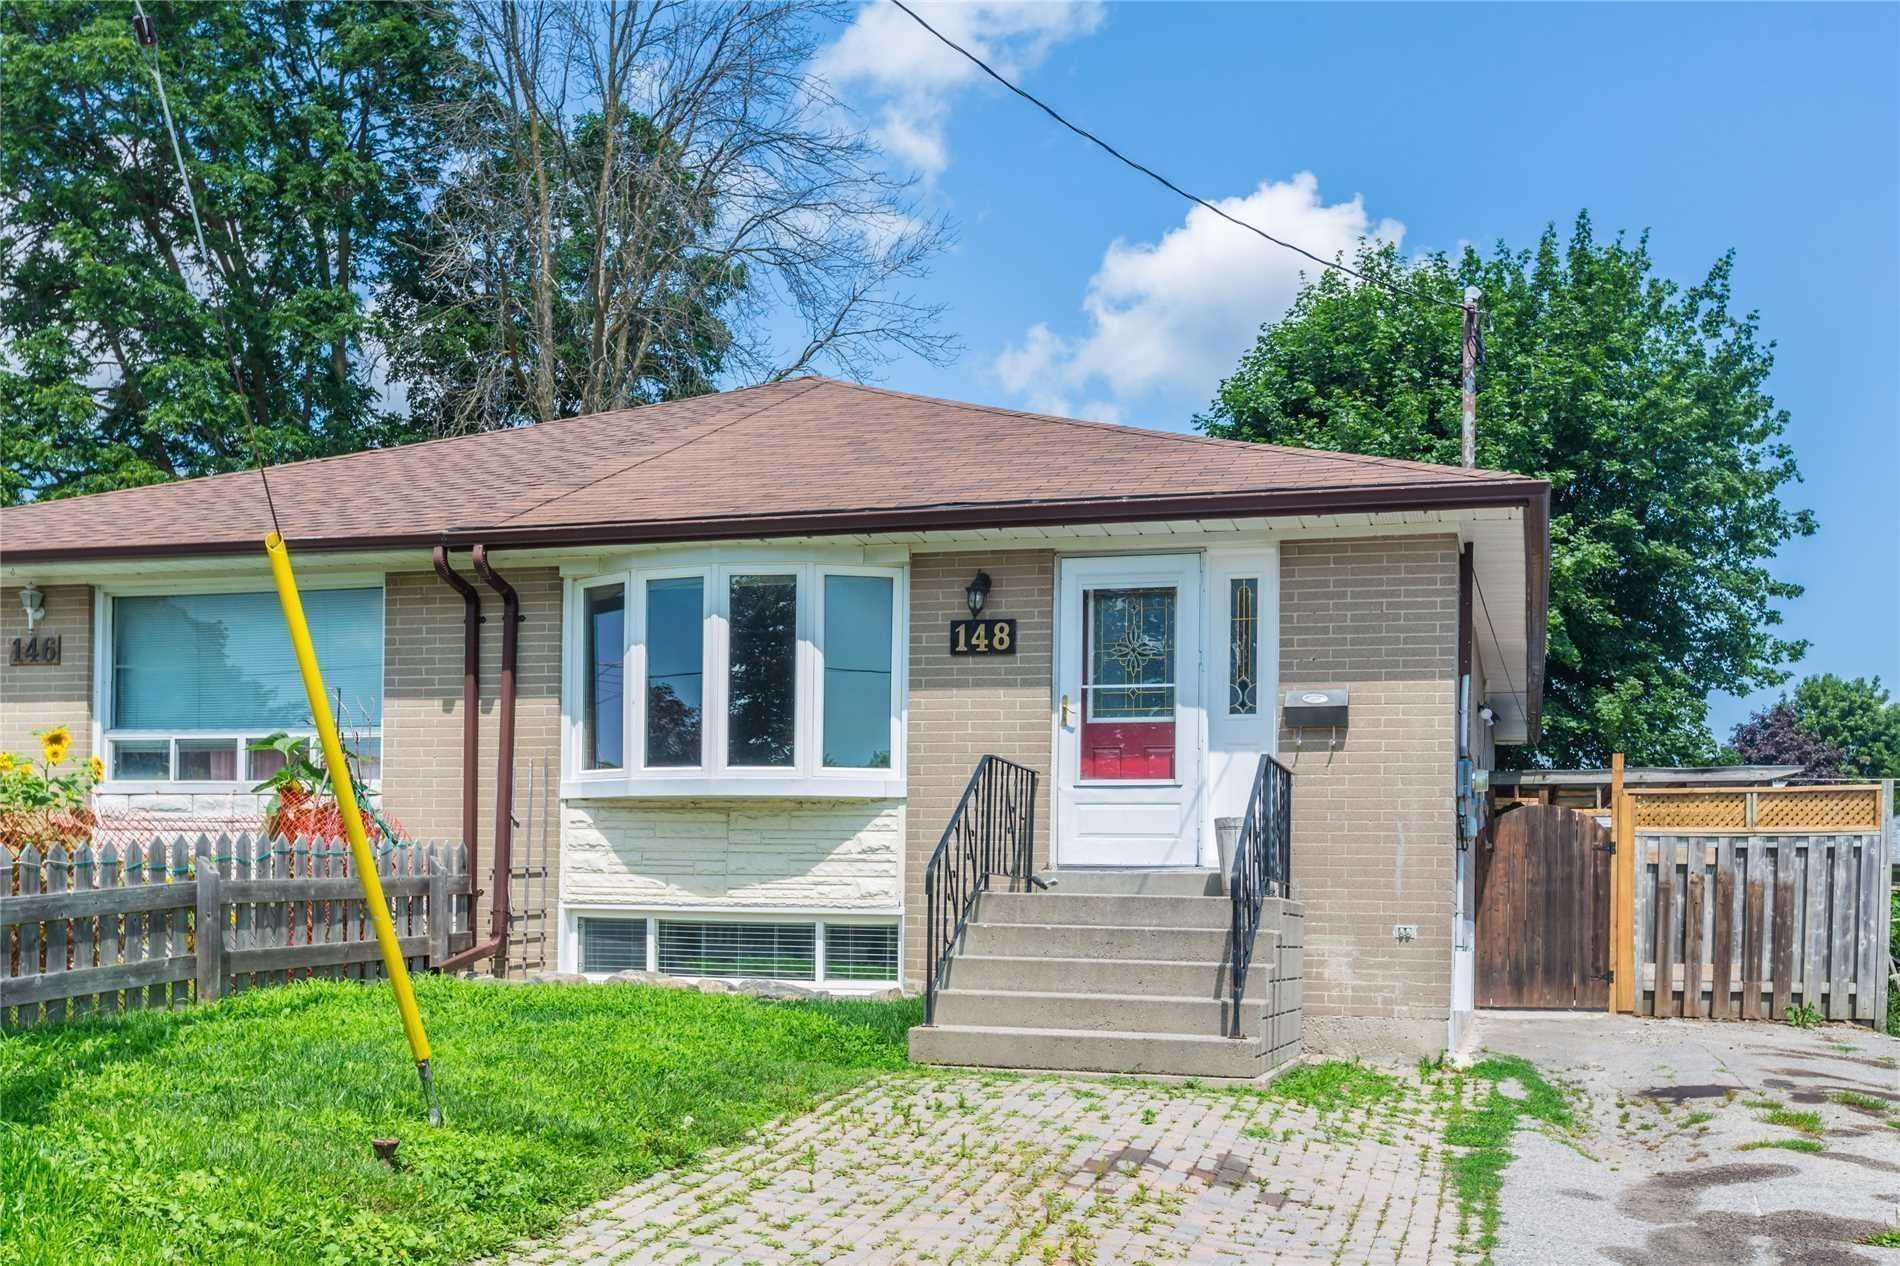 Semi-Detached For Lease In Newmarket , 2 Bedrooms Bedrooms, ,1 BathroomBathrooms,Semi-Detached,For Lease,Bsmt,Longford